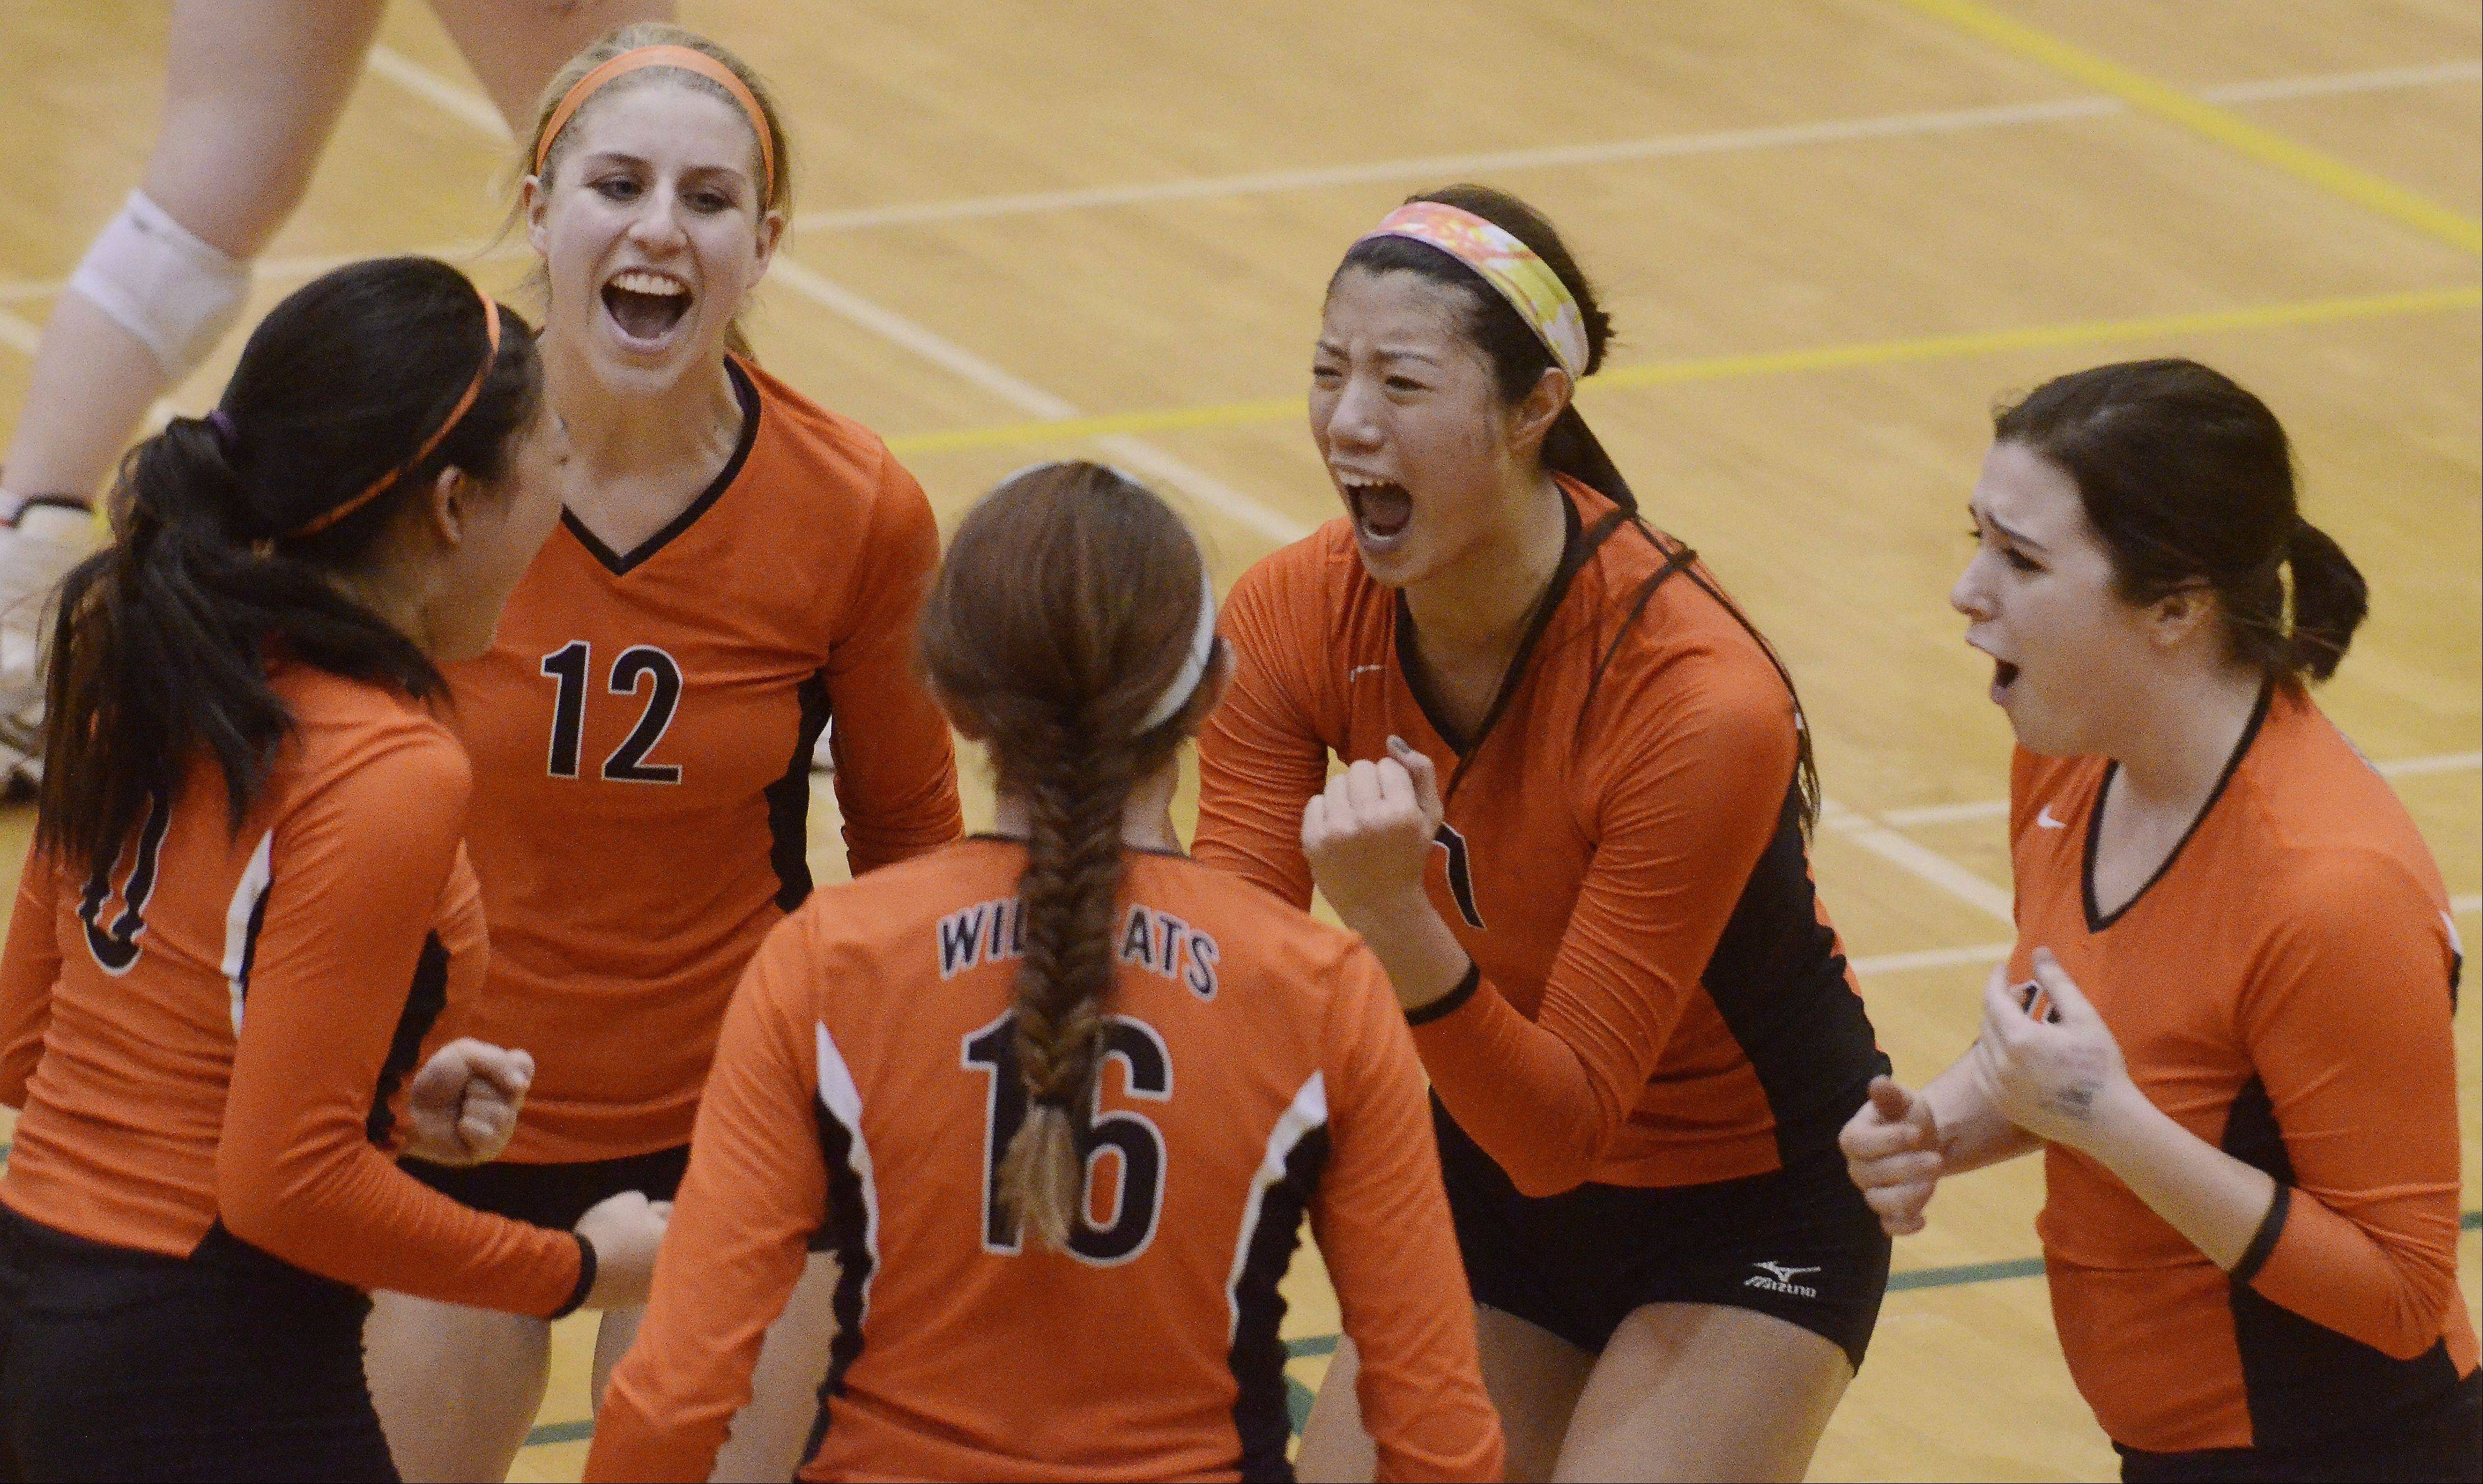 Clockwise from top left, Libertyville�s Jordan Bauer, Cindy Zhou, Cassie Ostmeyer, Rhiannon Prentiss and Vicky Liu celebrate their victory over Hersey during Tuesday�s sectional semifinal at Fremd High School in Palatine.